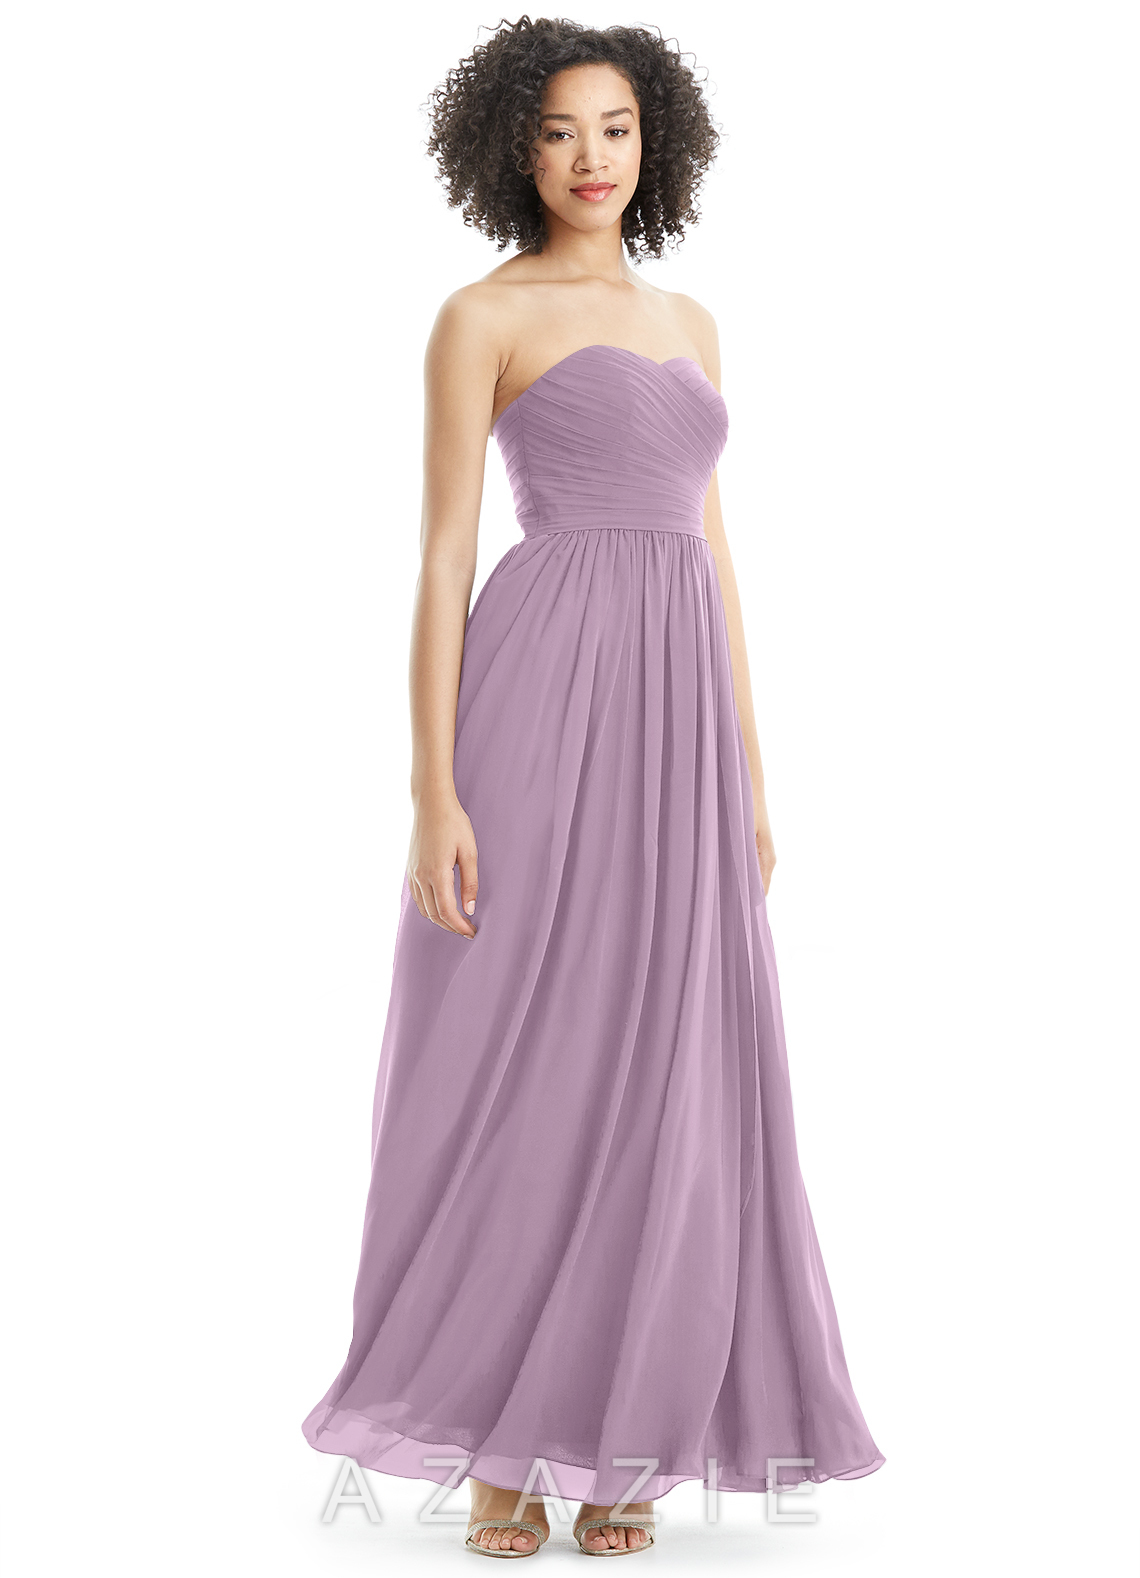 7e69e22fcc0b Azazie Jasmine Bridesmaid Dress | Azazie